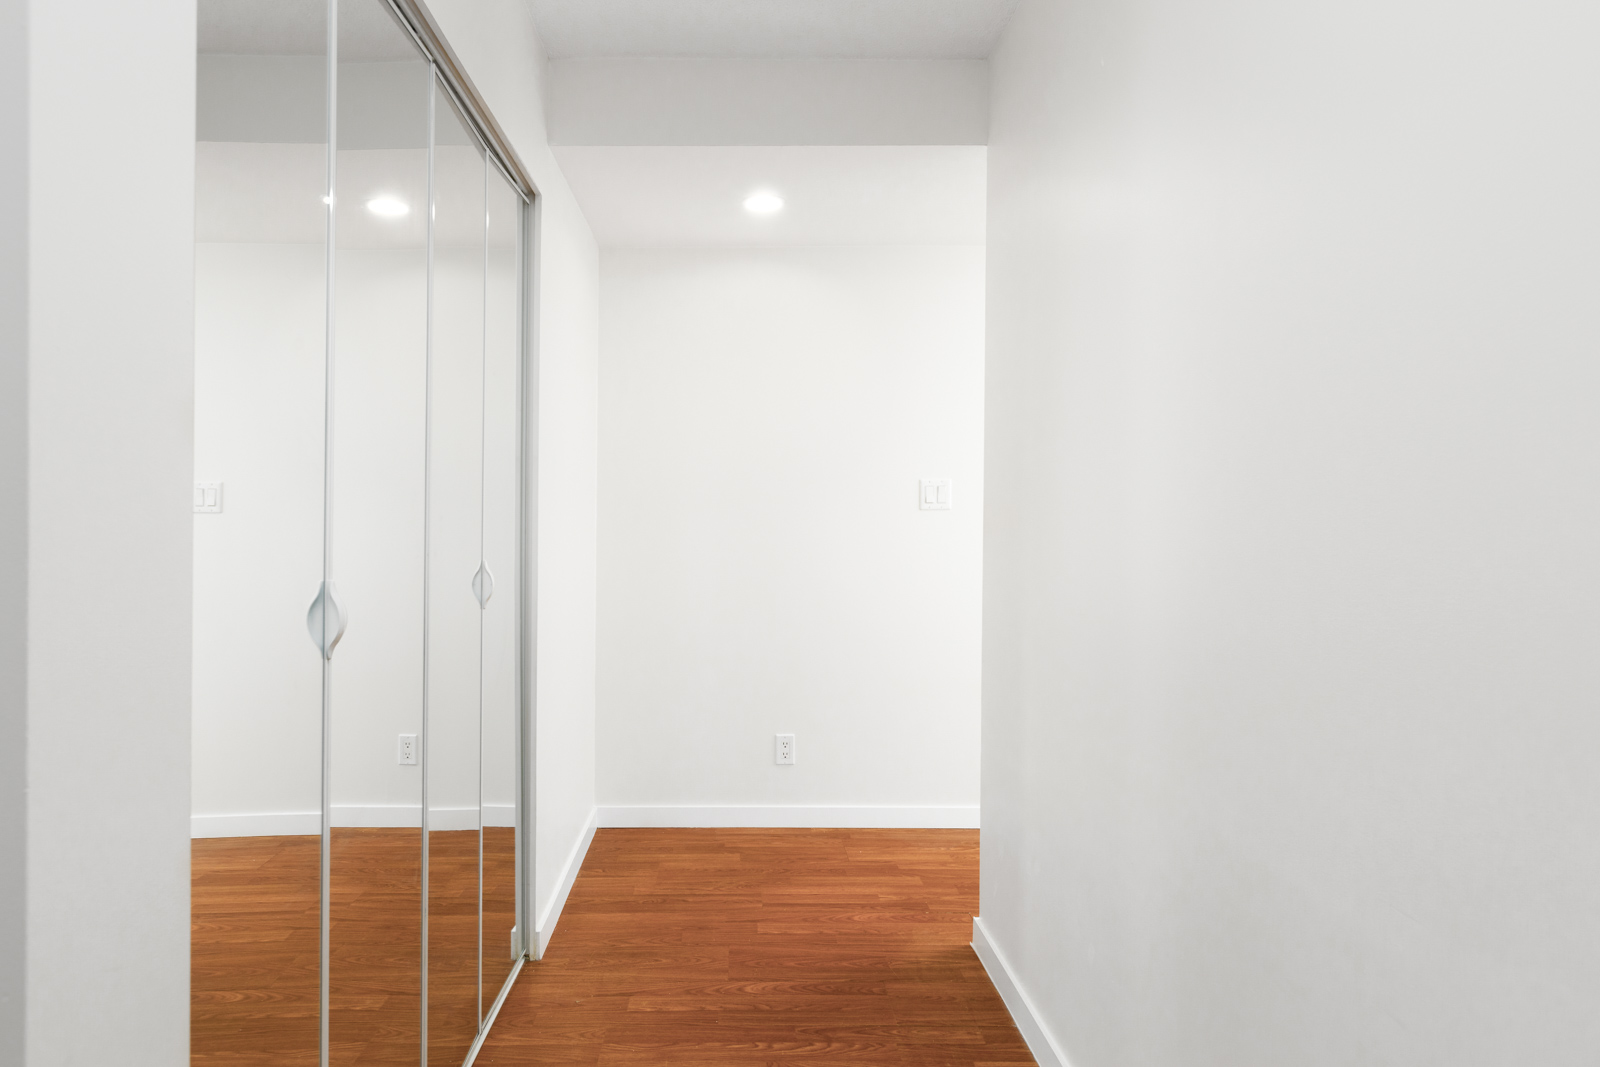 Interior hall with mirrored sliding closet inside Downtown Vancouver rental condo.